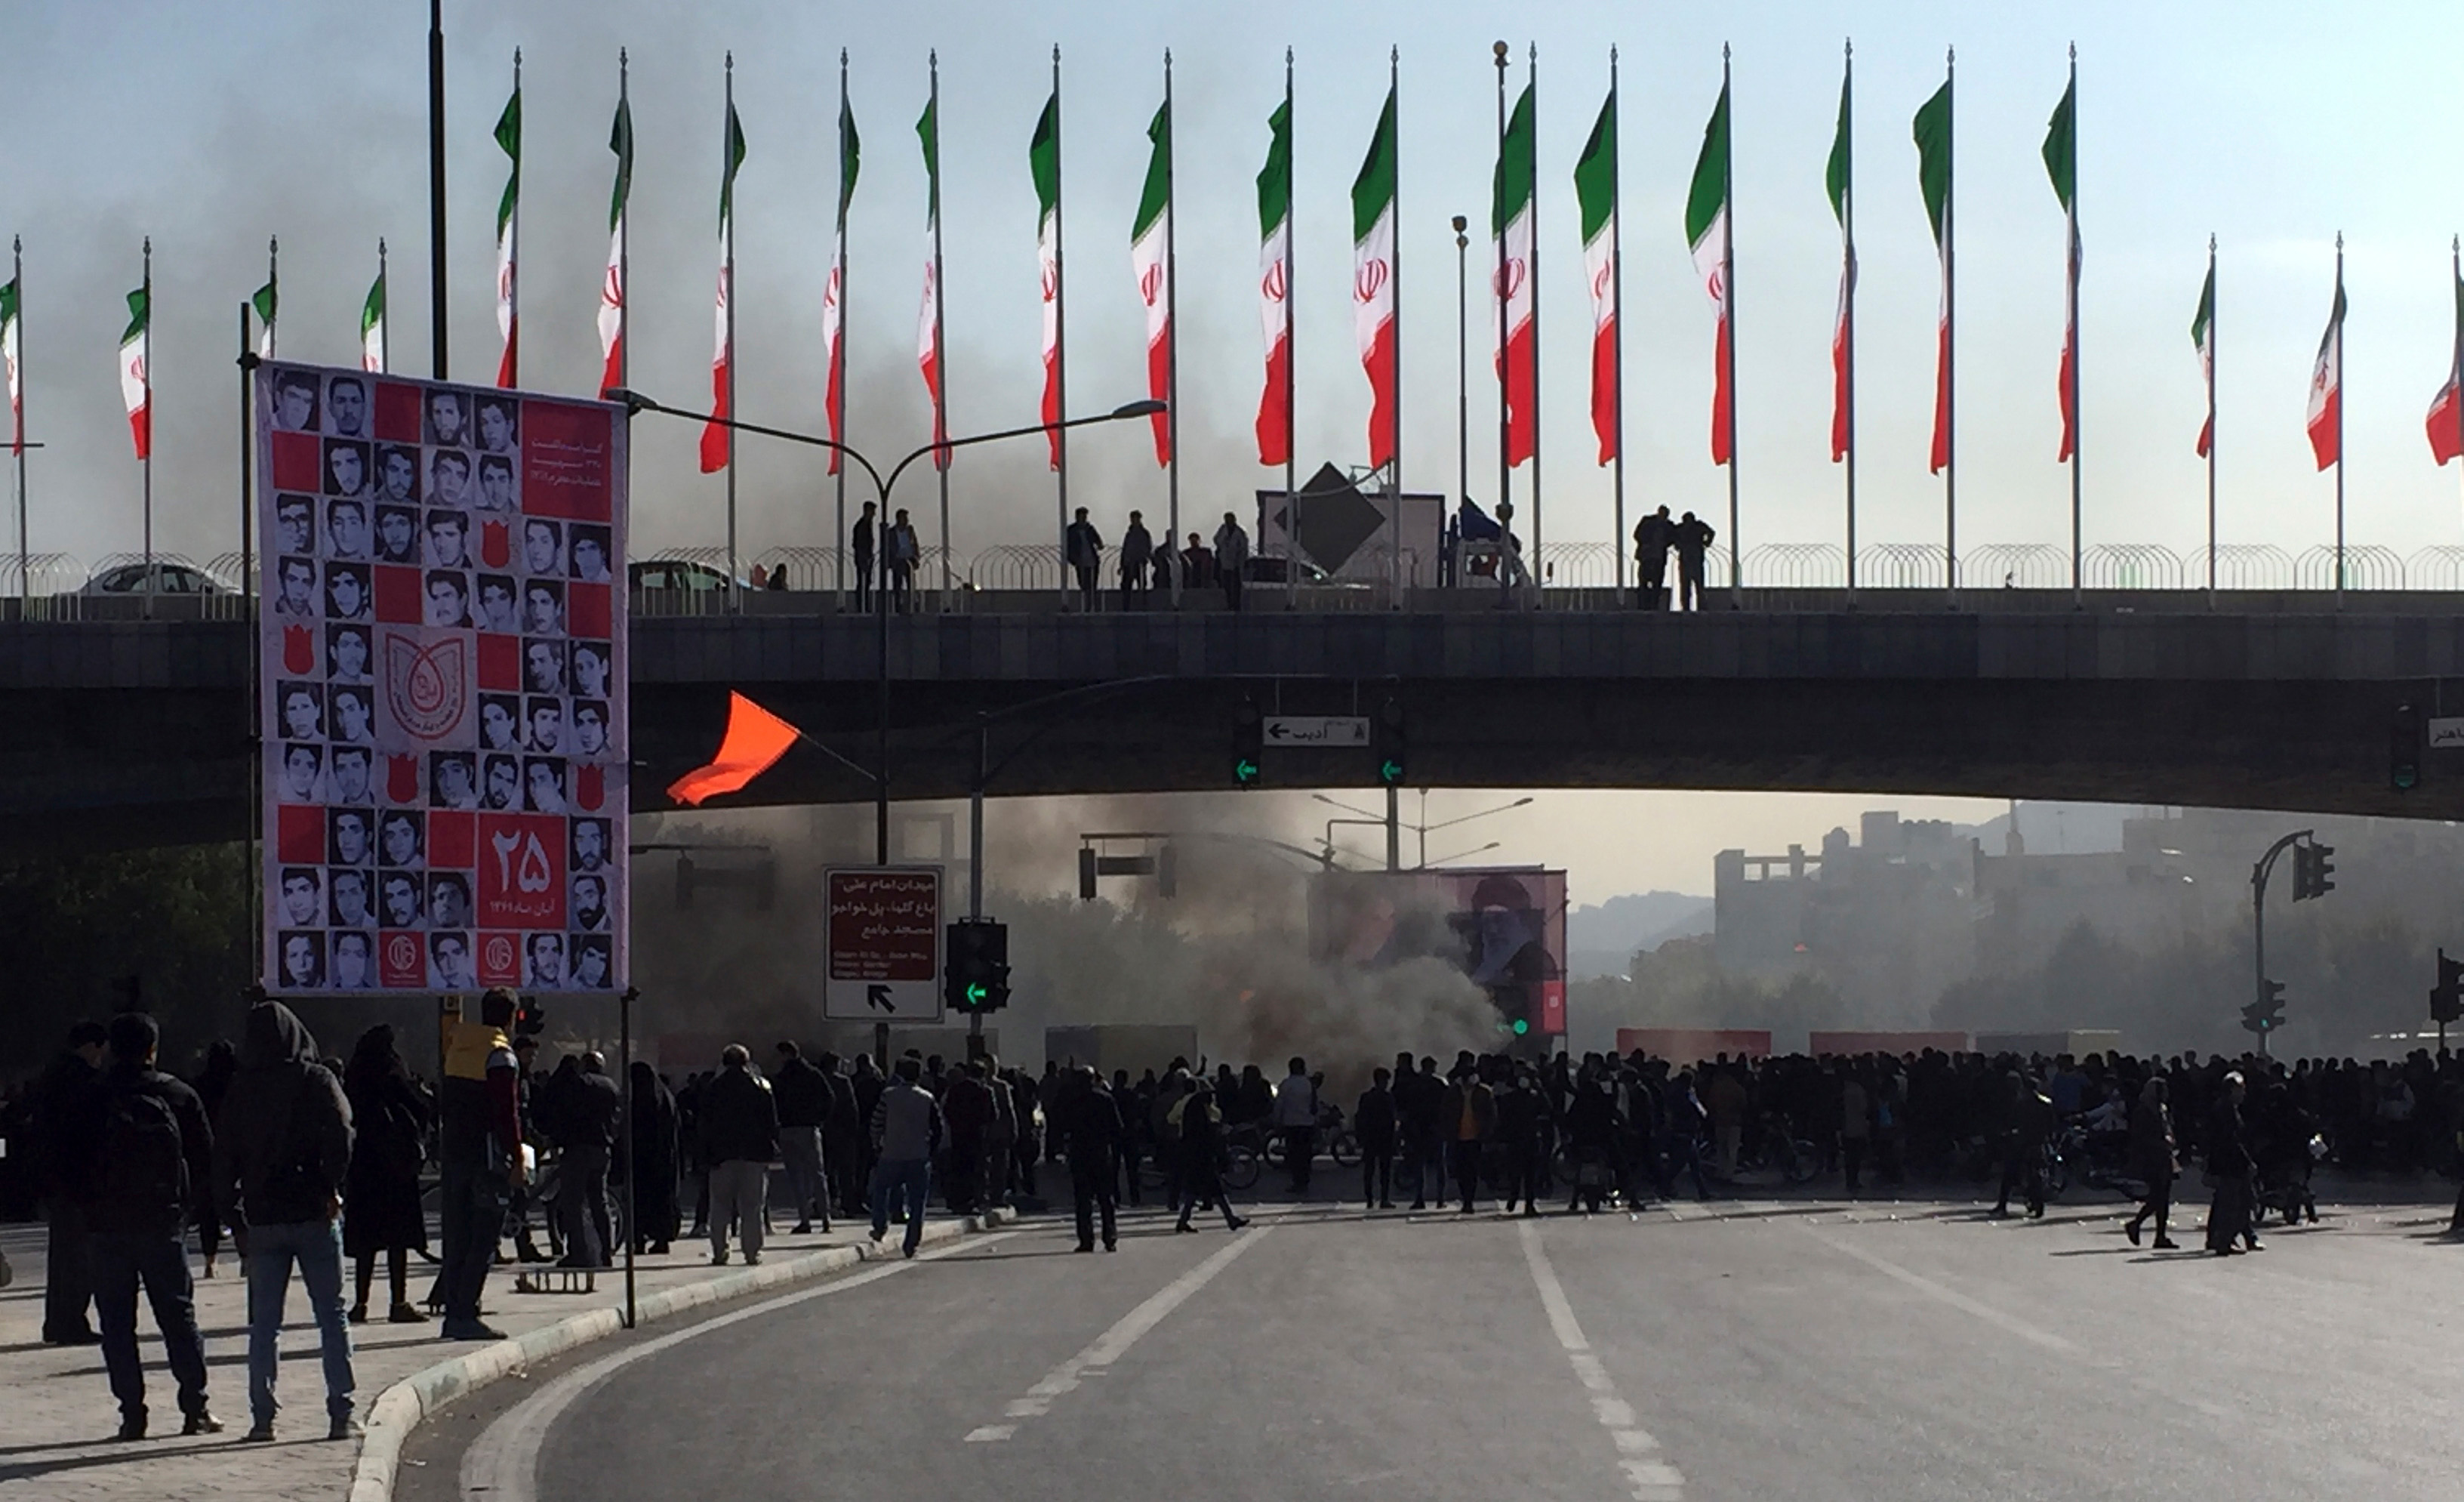 Smoke rises during a protest after authorities raised gasoline prices, in the central city of Isfahan, Iran, Saturday, Nov. 16, 2019.